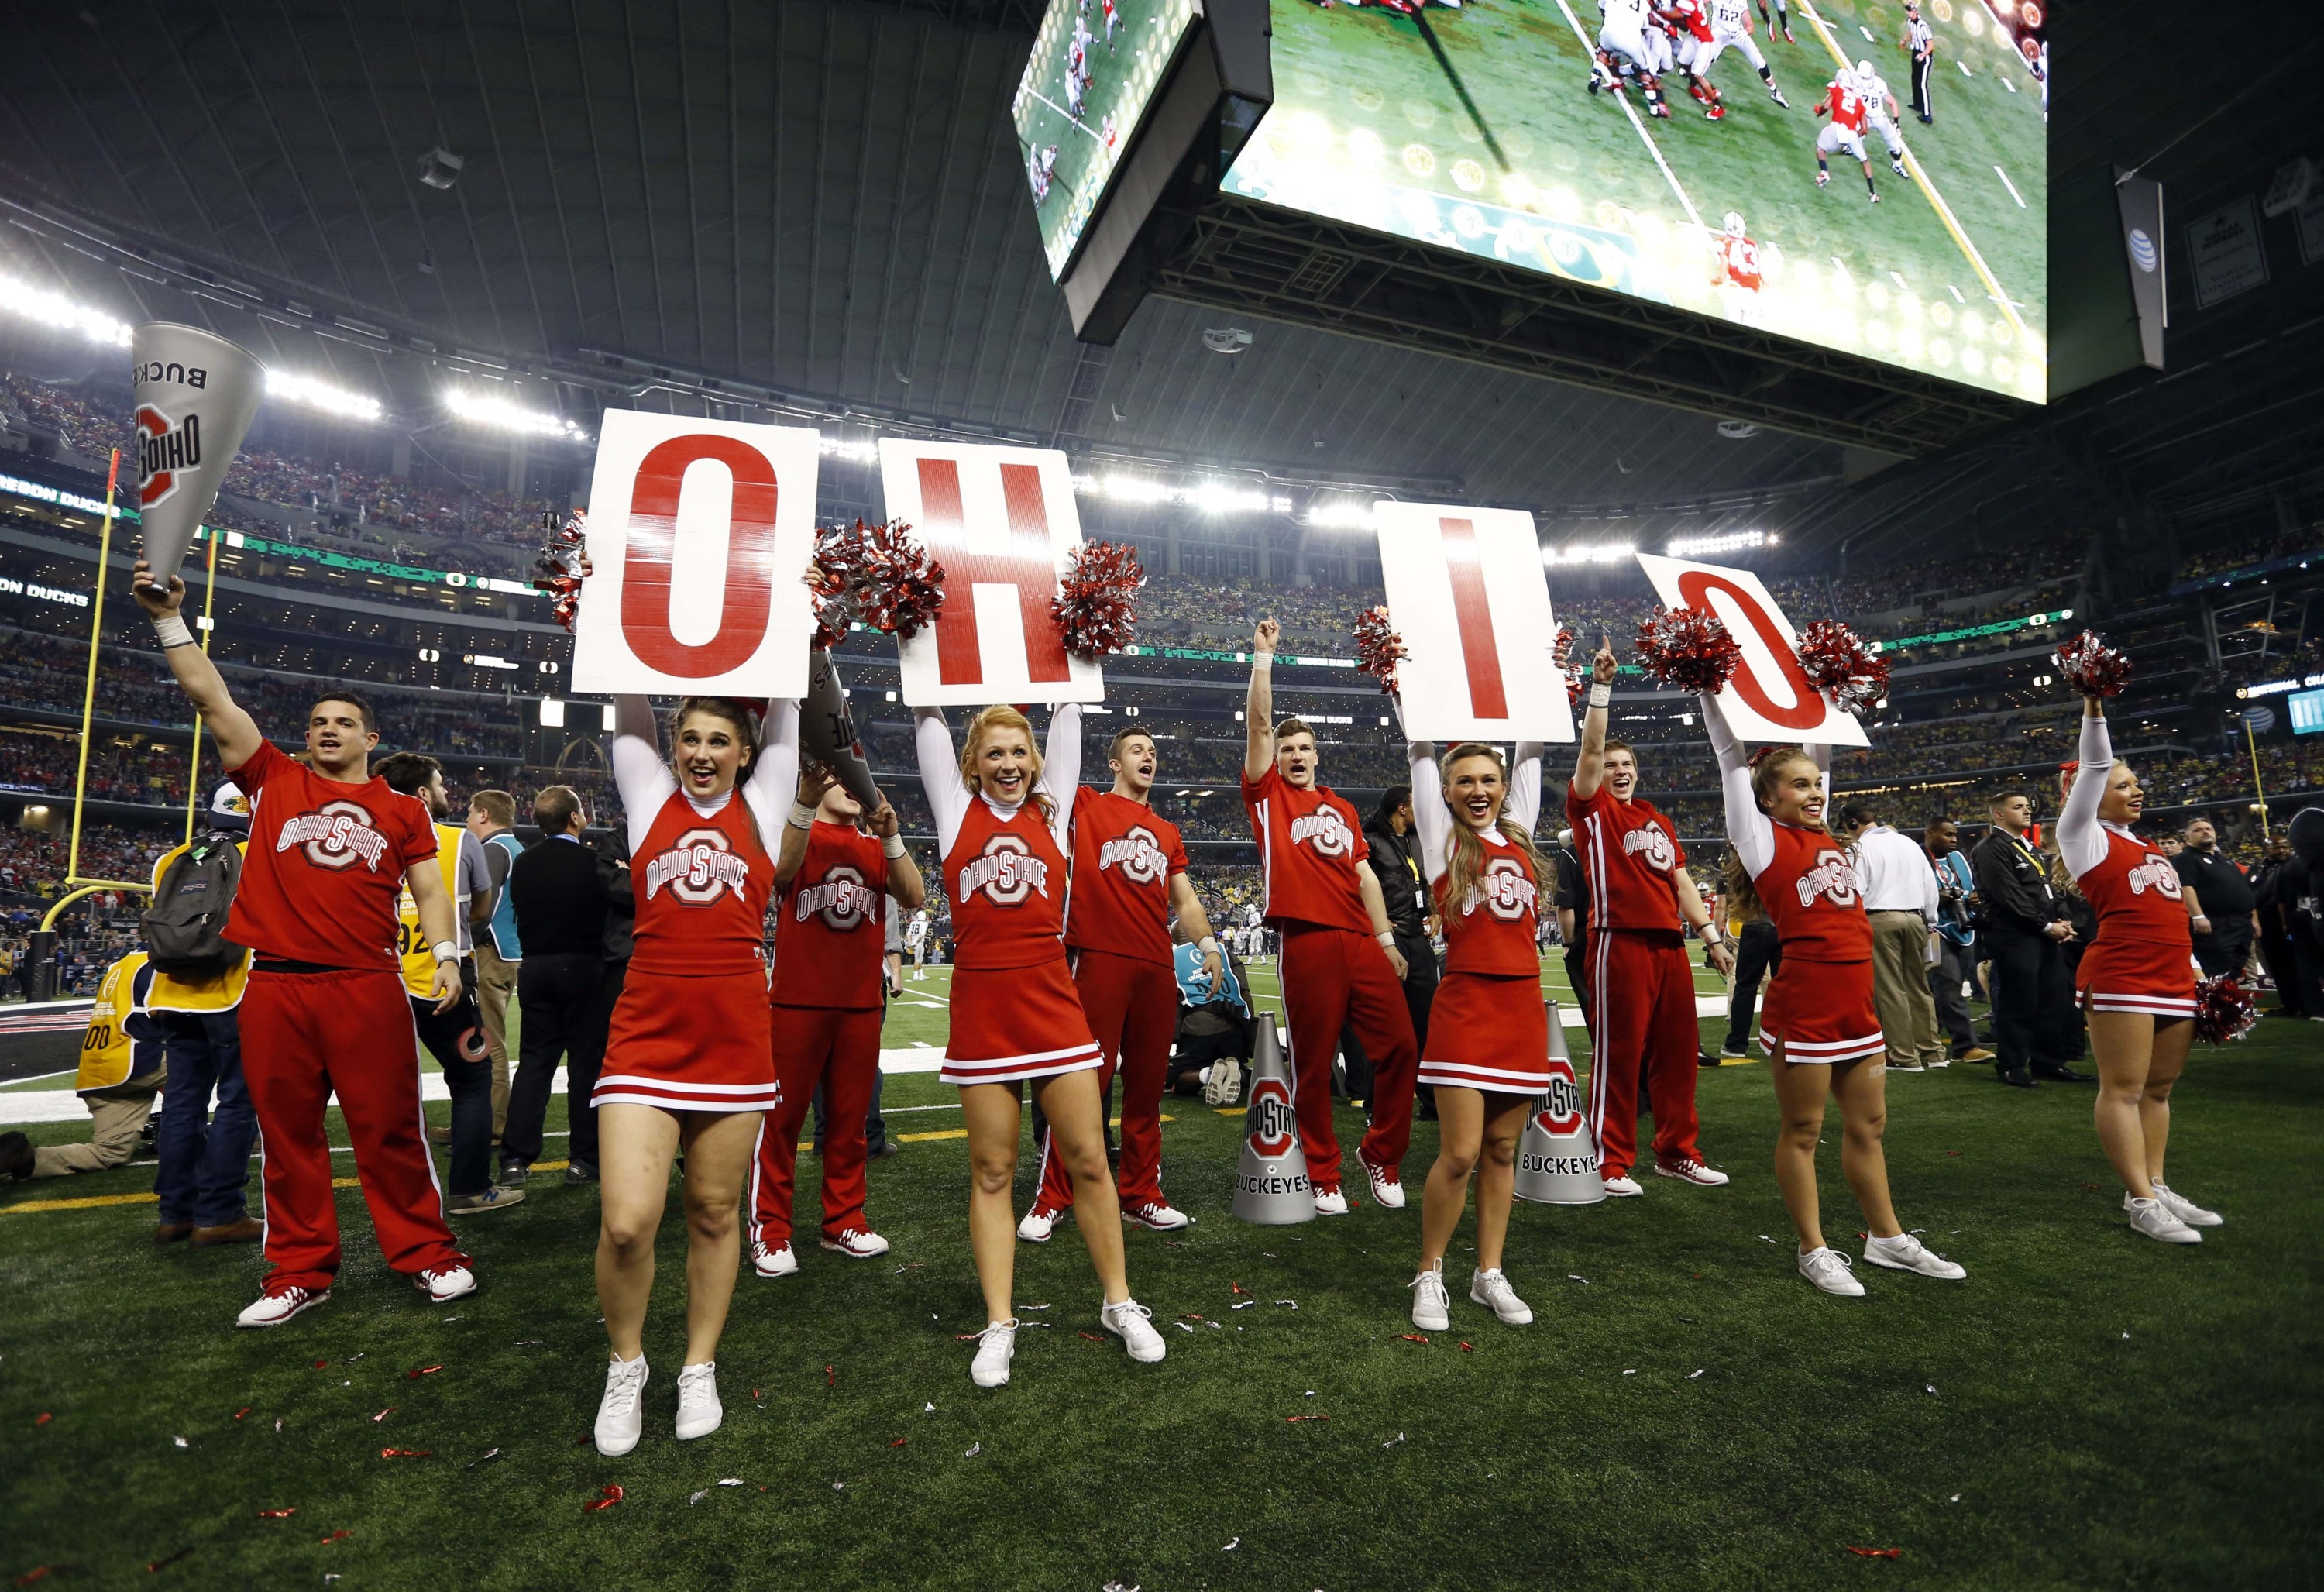 Jan 12, 2015; Arlington, TX, USA; Ohio State Buckeyes cheerleaders perform in the 2015 CFP National Championship Game against the Oregon Ducks at AT&T Stadium. Mandatory Credit: Matthew Emmons-USA TODAY Sports